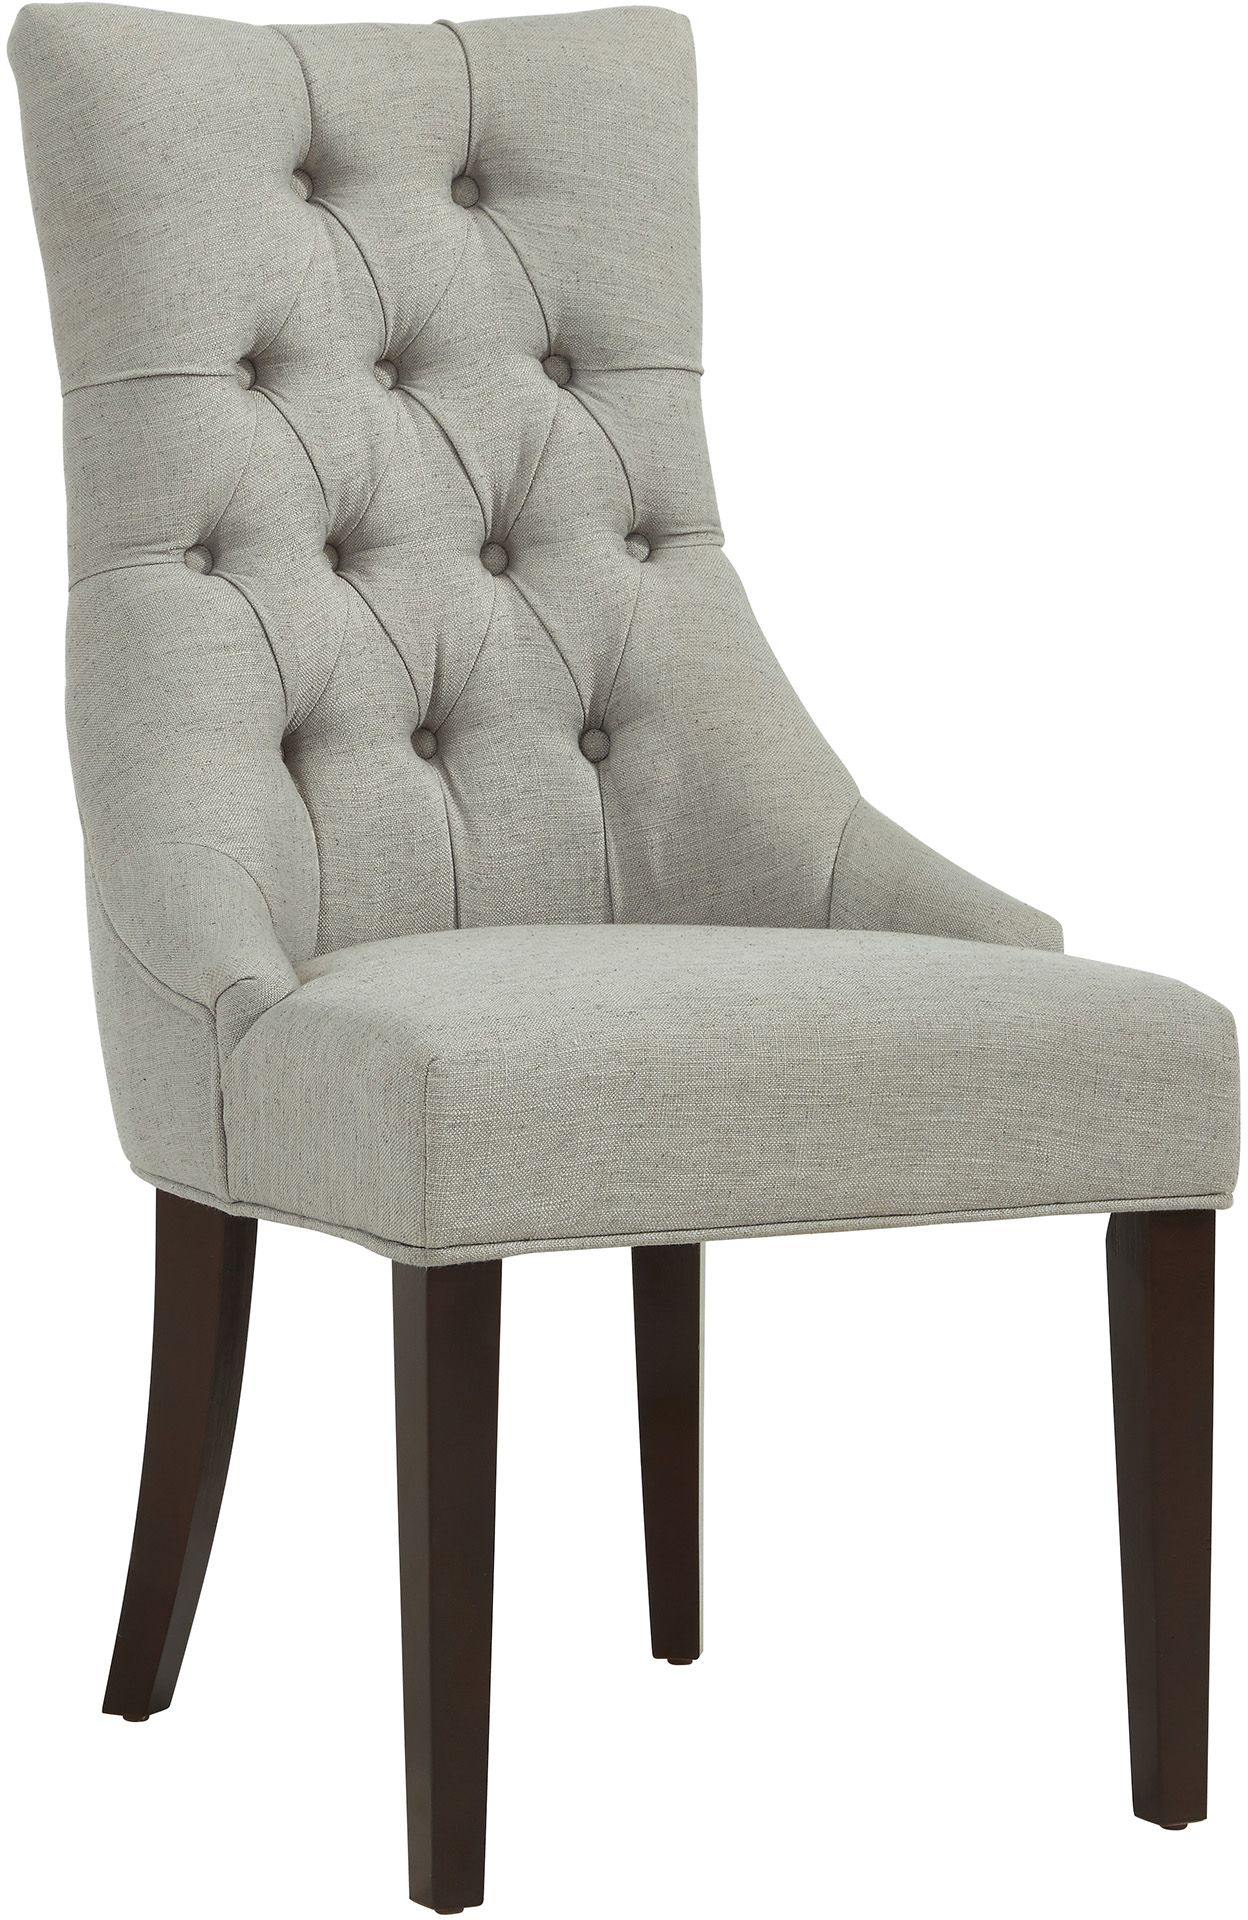 grey tufted dining chairs canada deck rocking chair nspire sinatra accent with coffee legs 403